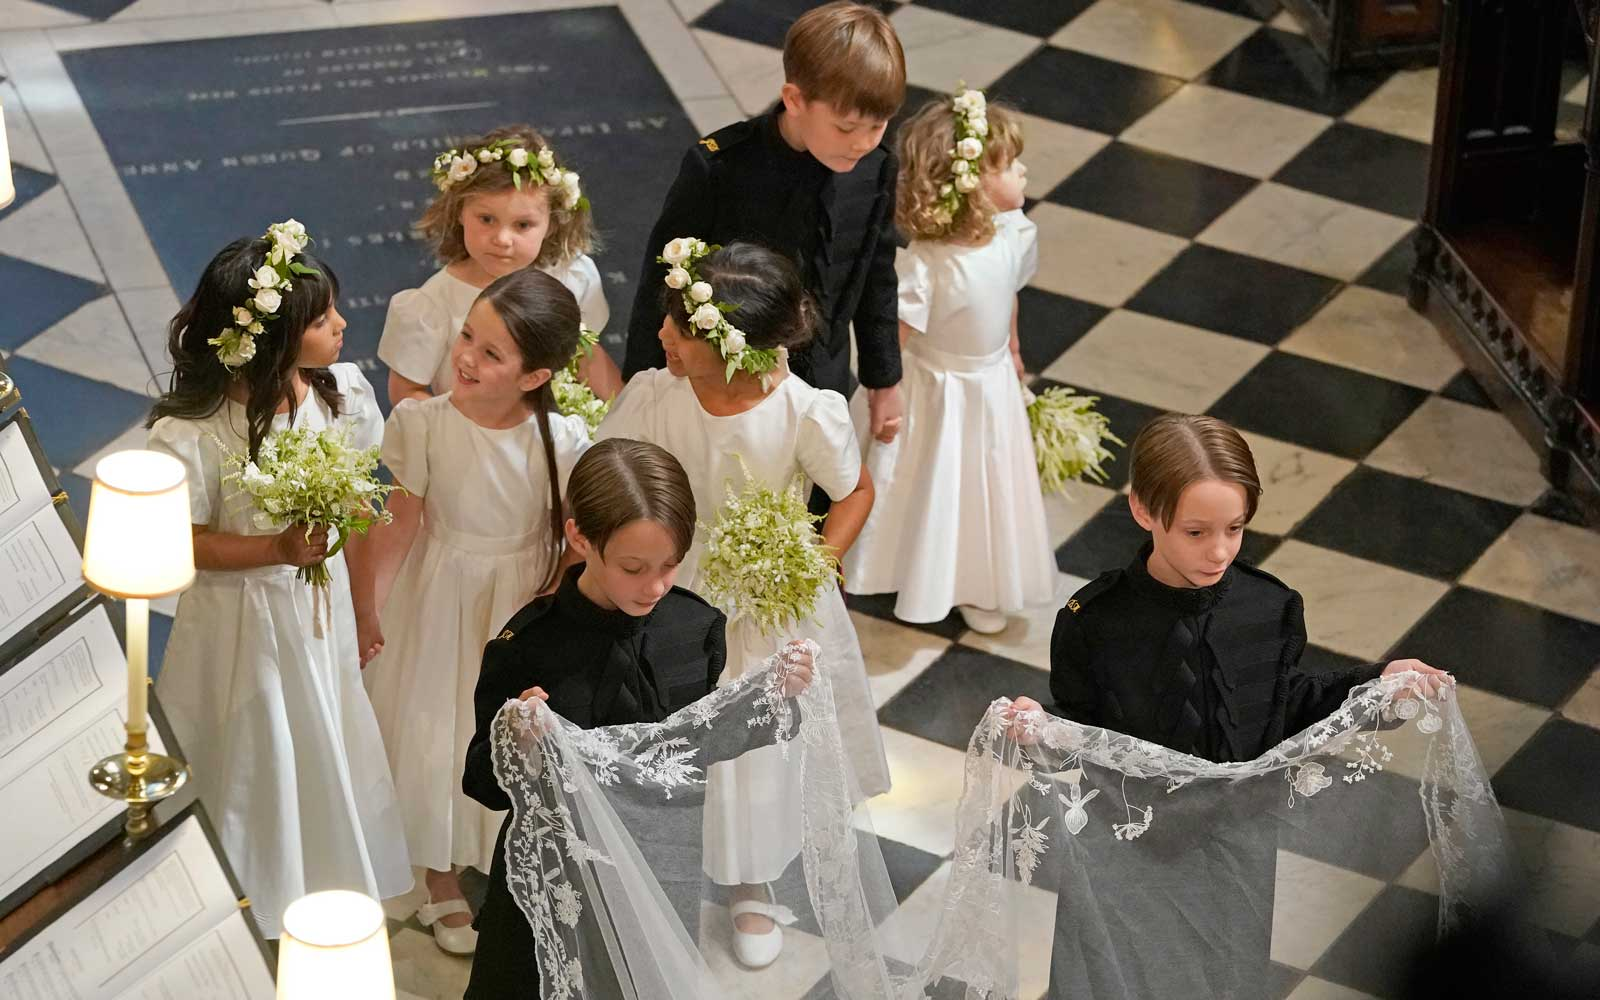 Bridesmaids and Page Boys during the wedding ceremony of Prince Harry  and Meghan Markle in St George's Chapel at Windsor Castle